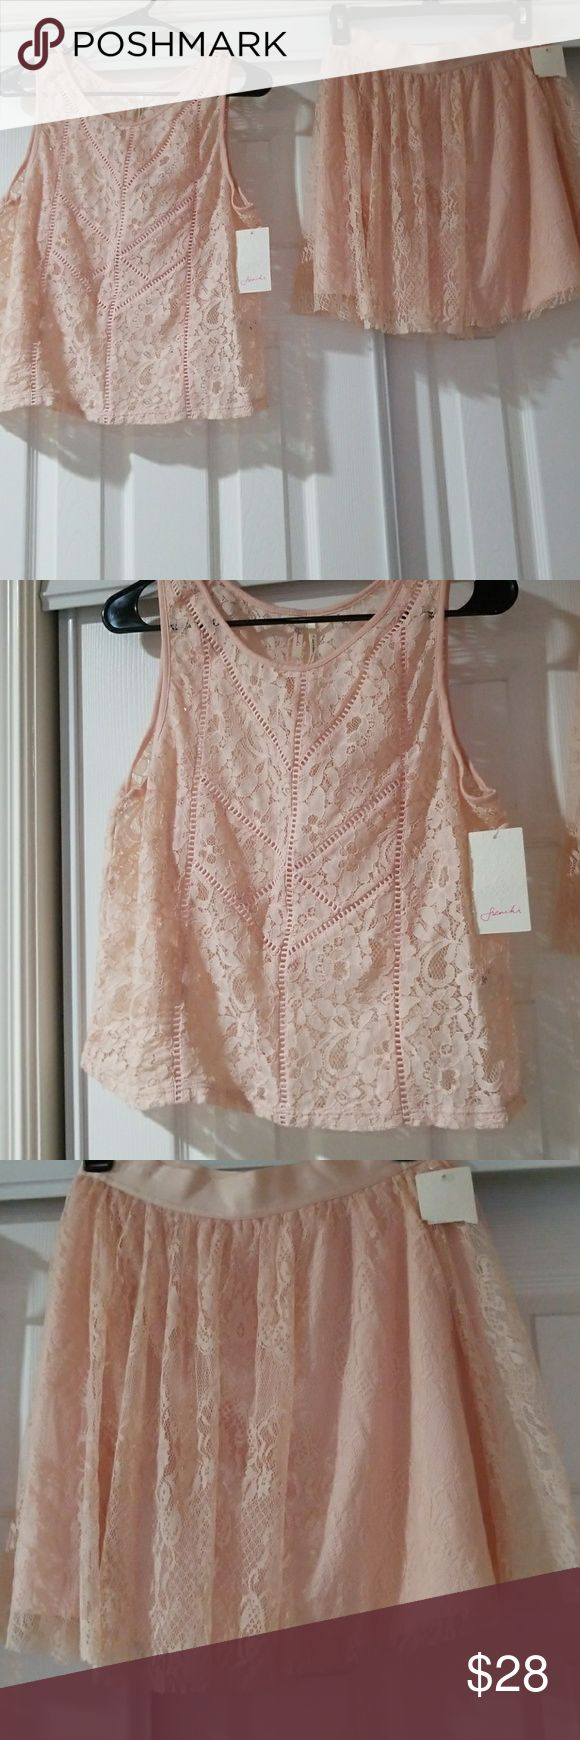 Matching lace top and skirt in peach color . Brand new peach colored sleeveless lace top with matching lace lined mini skirt , not to short. Top is m, skirt is small. Frenchi Dresses Mini